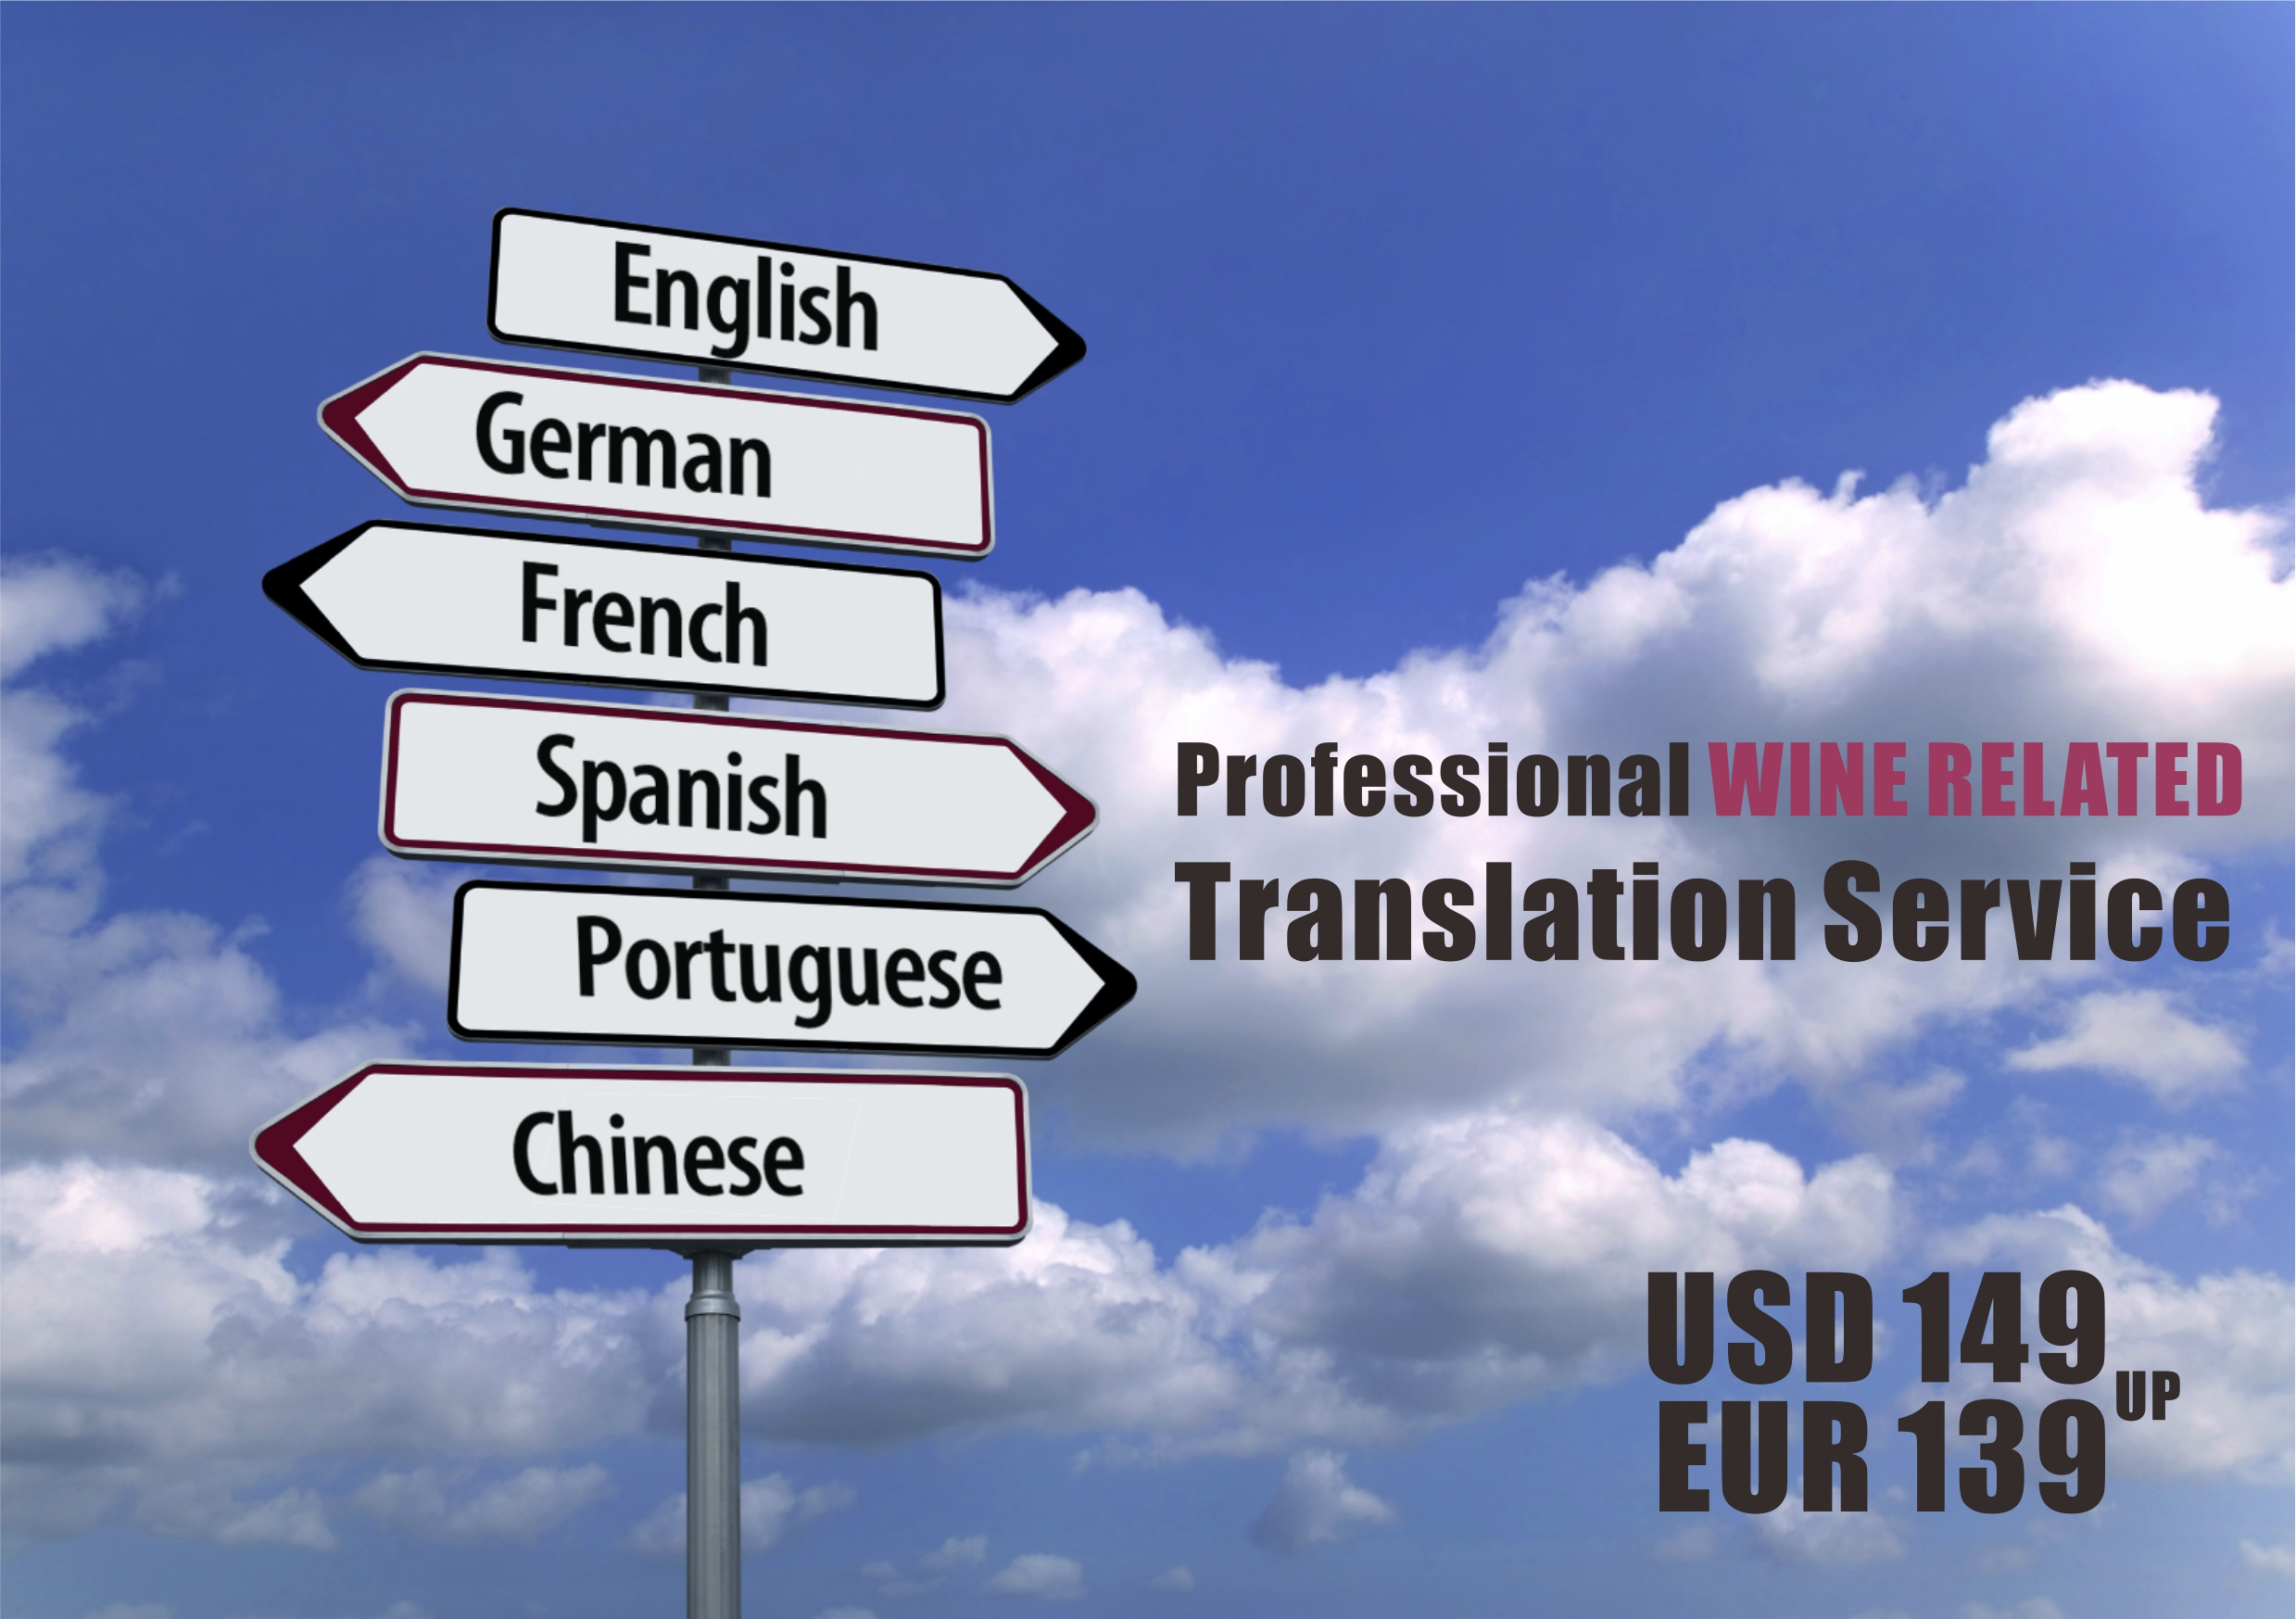 Wine-Related Translation Service